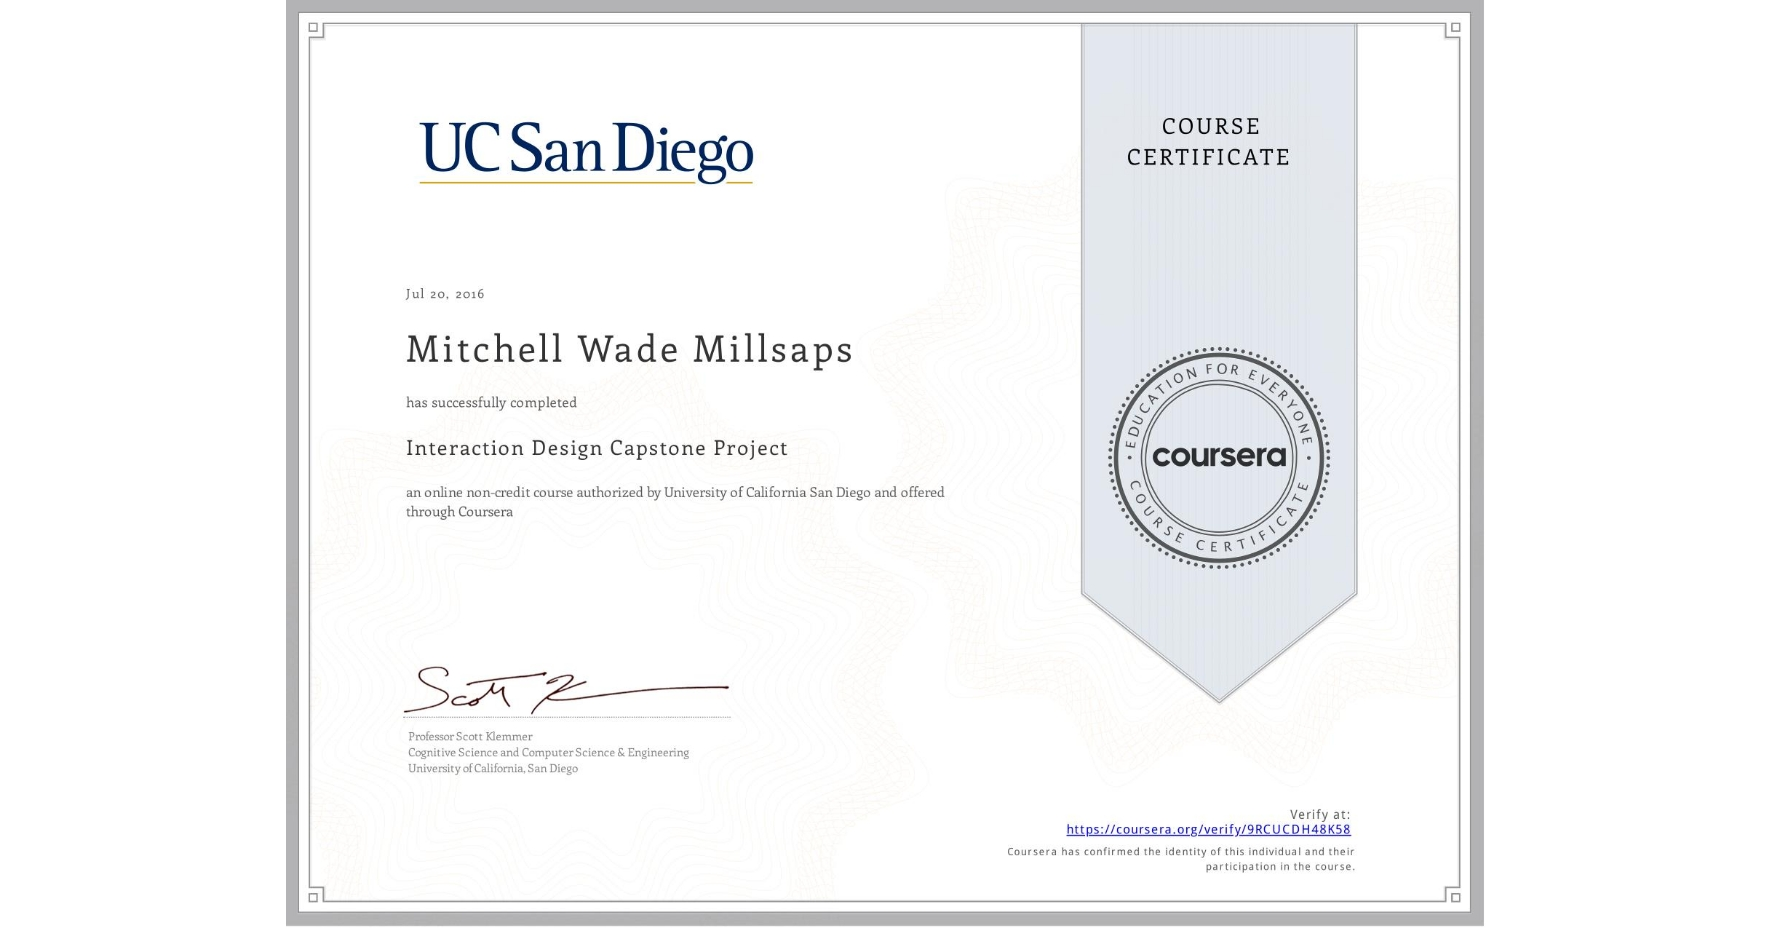 View certificate for Mitchell Wade Millsaps, Interaction Design Capstone Project, an online non-credit course authorized by University of California San Diego and offered through Coursera